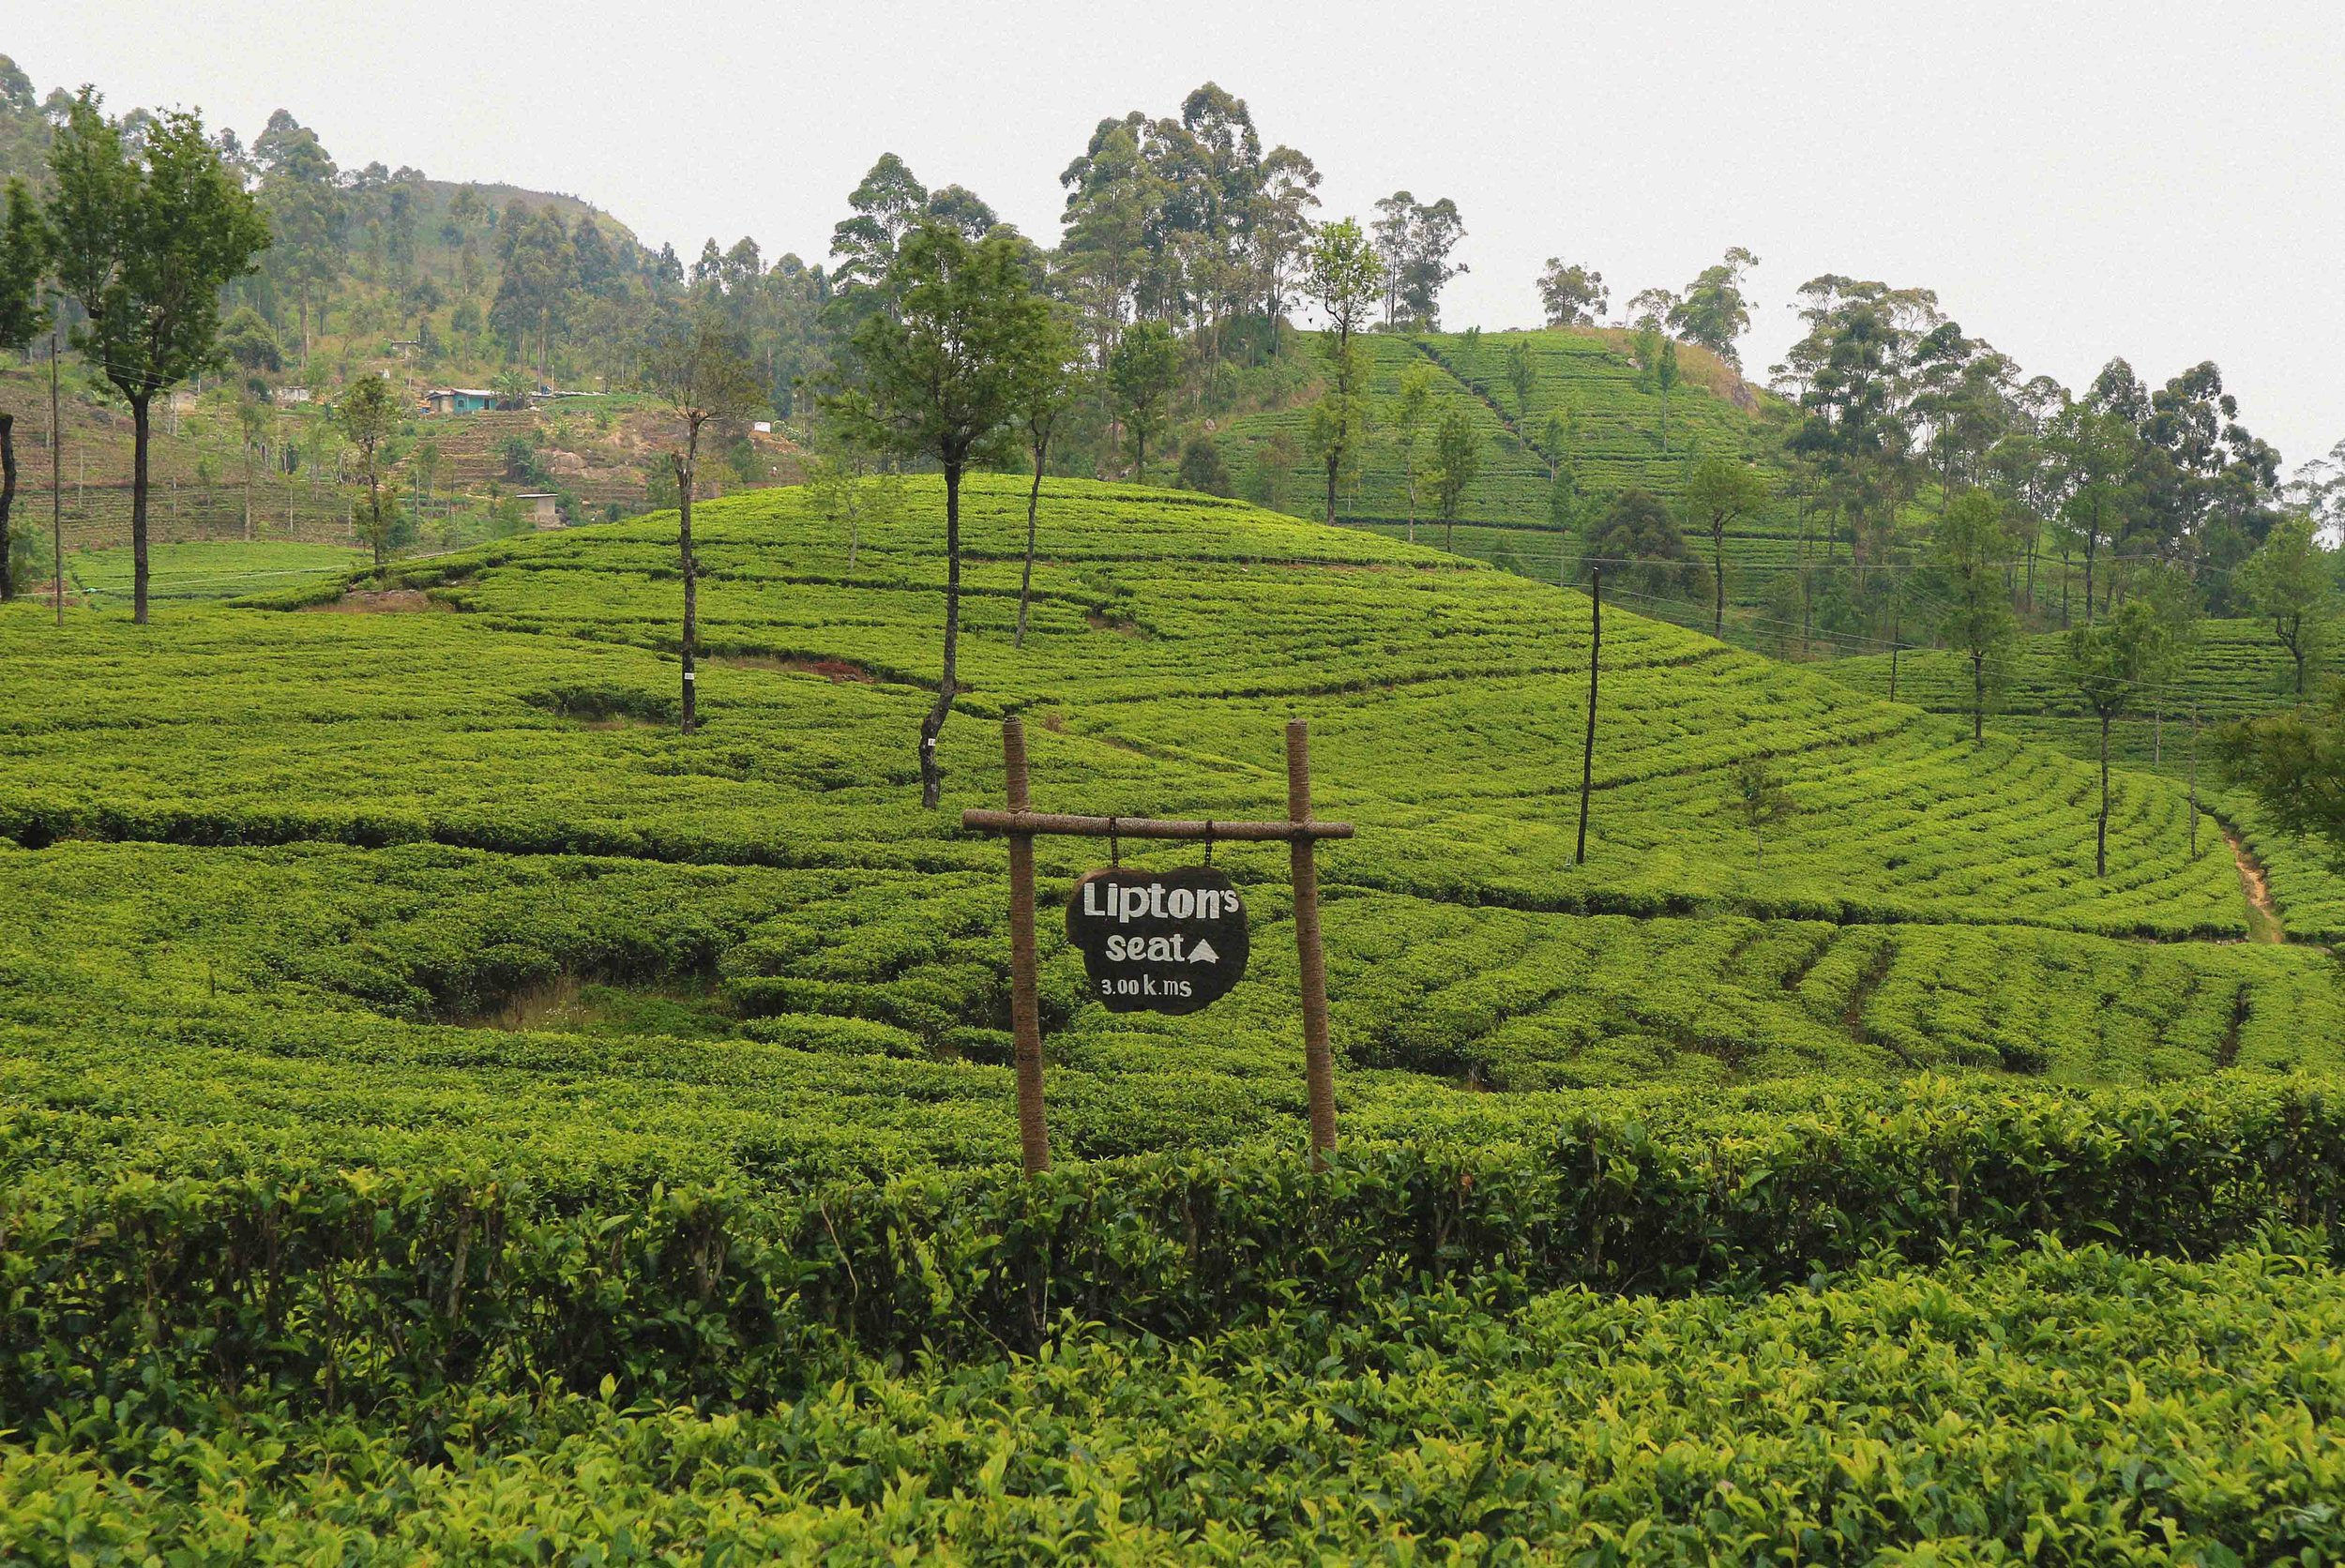 Lipton's tea plantation near Hapatule